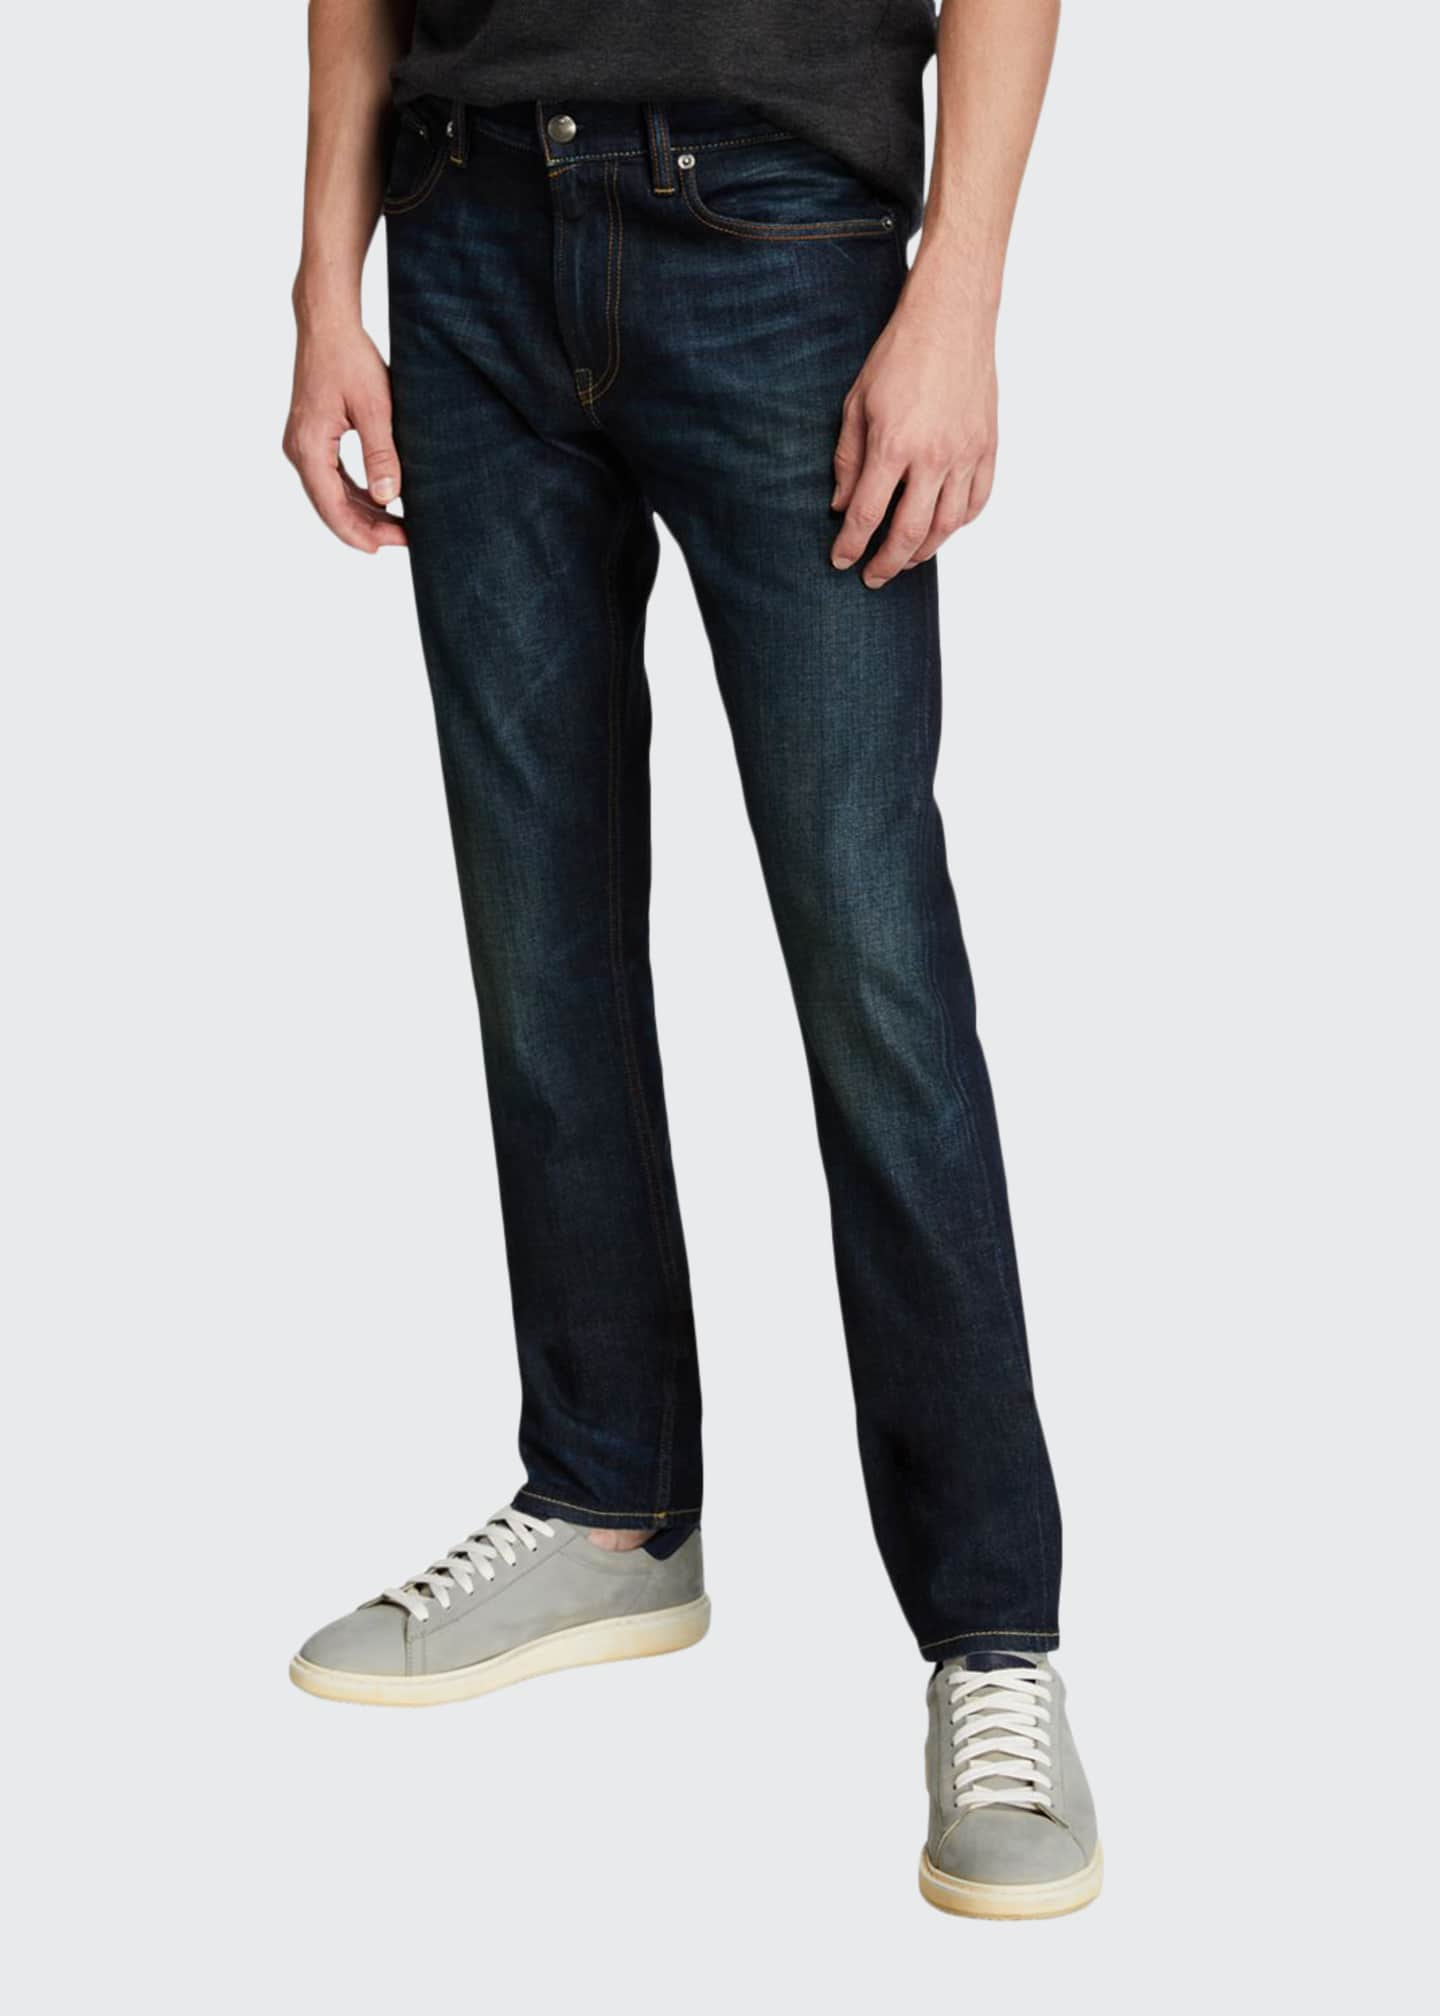 Image 1 of 3: Men's Straight Denim Jeans